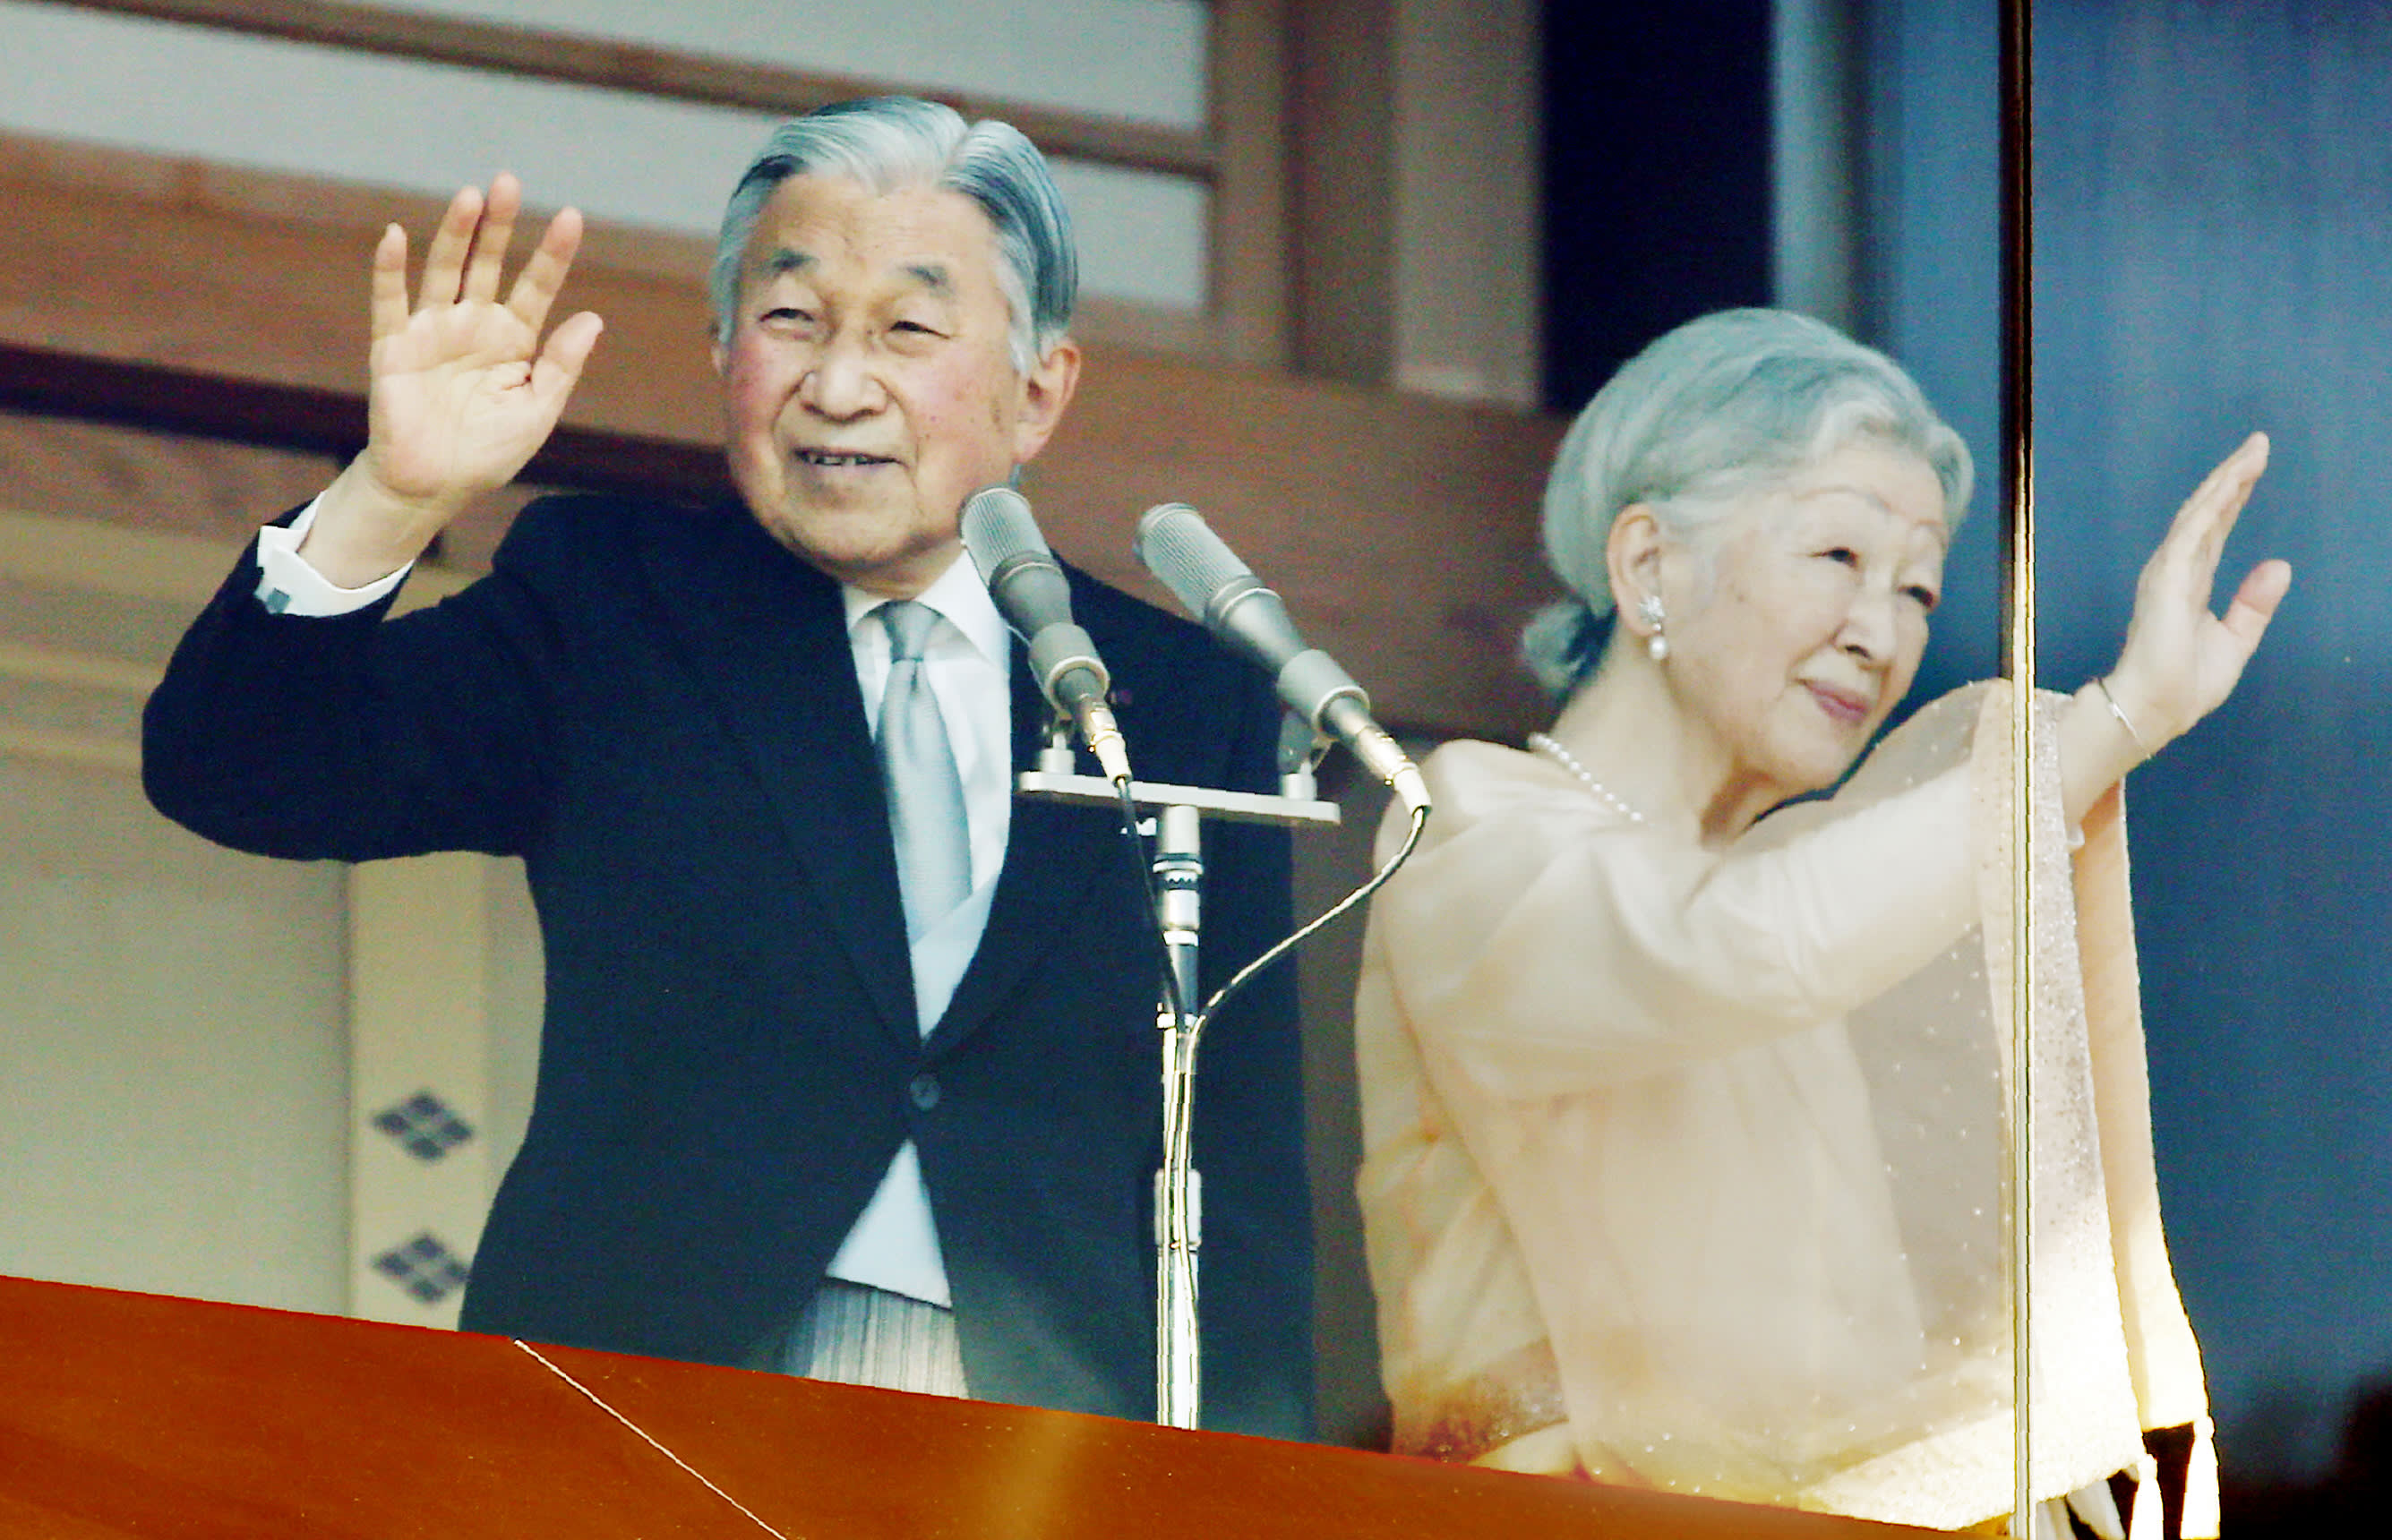 BLOG_The Beginning of a New Era_Akihito waves with Michiko